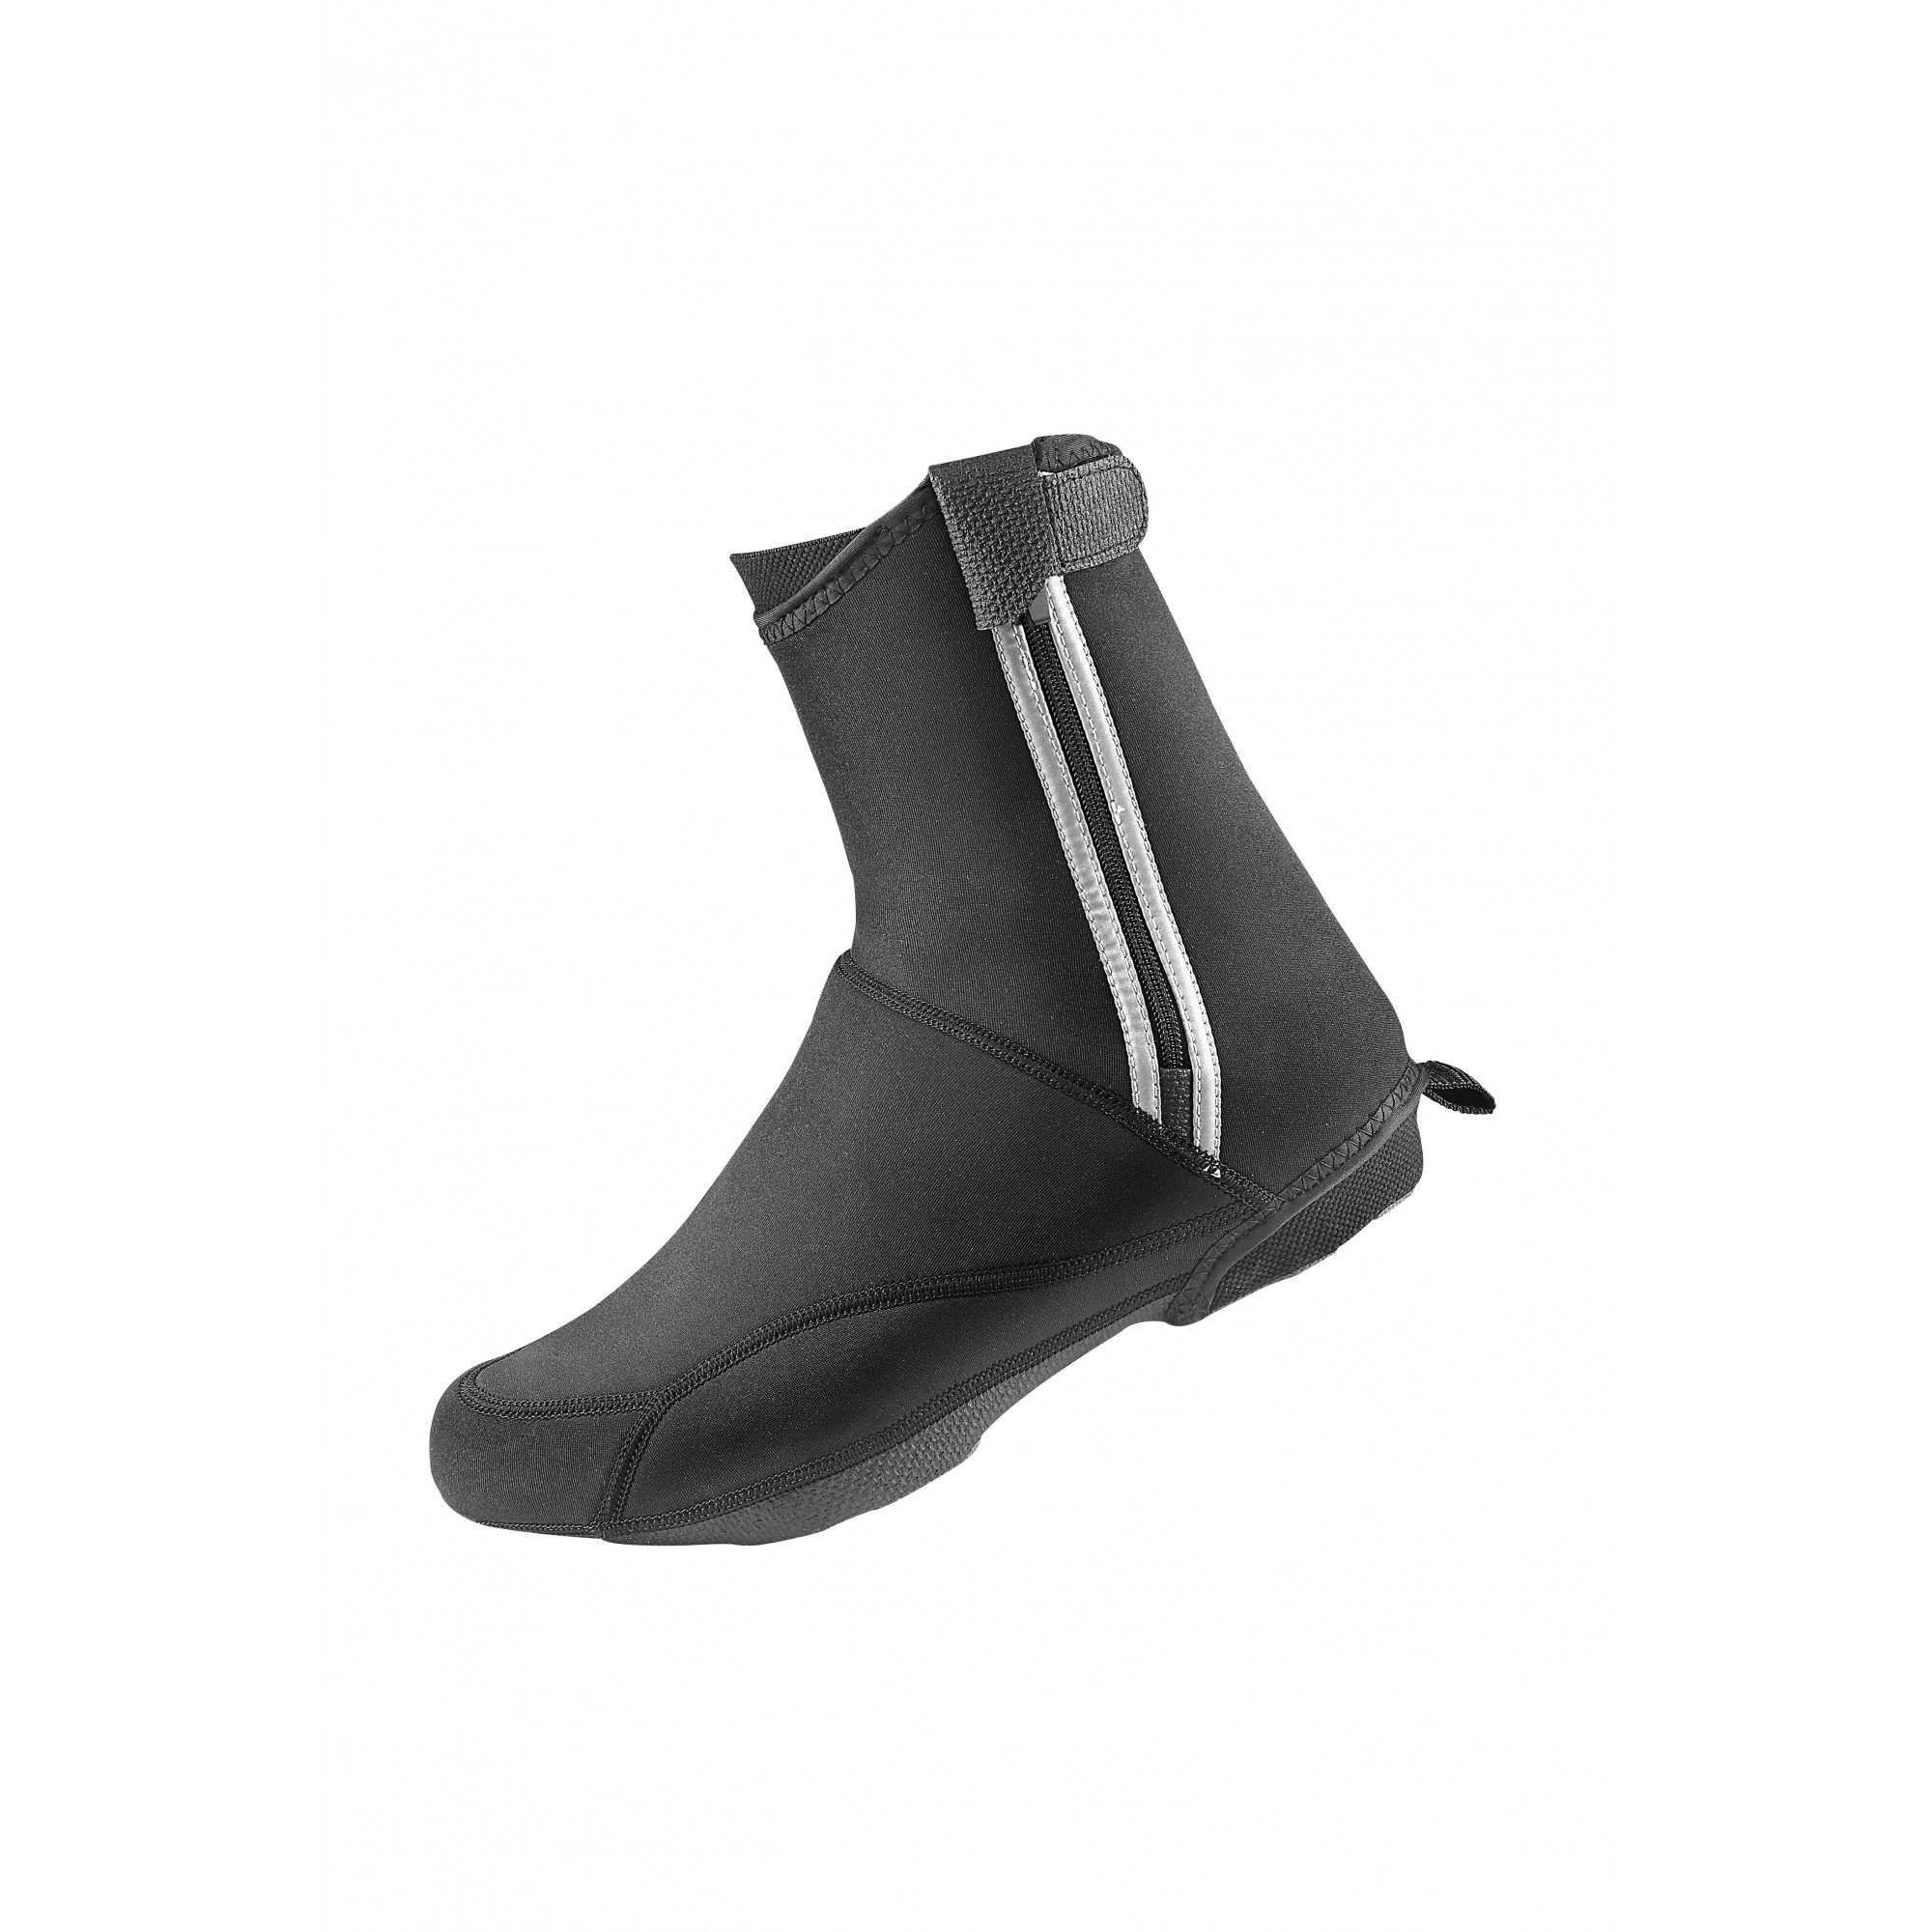 Couvre chaussures Giant hiver neoprene